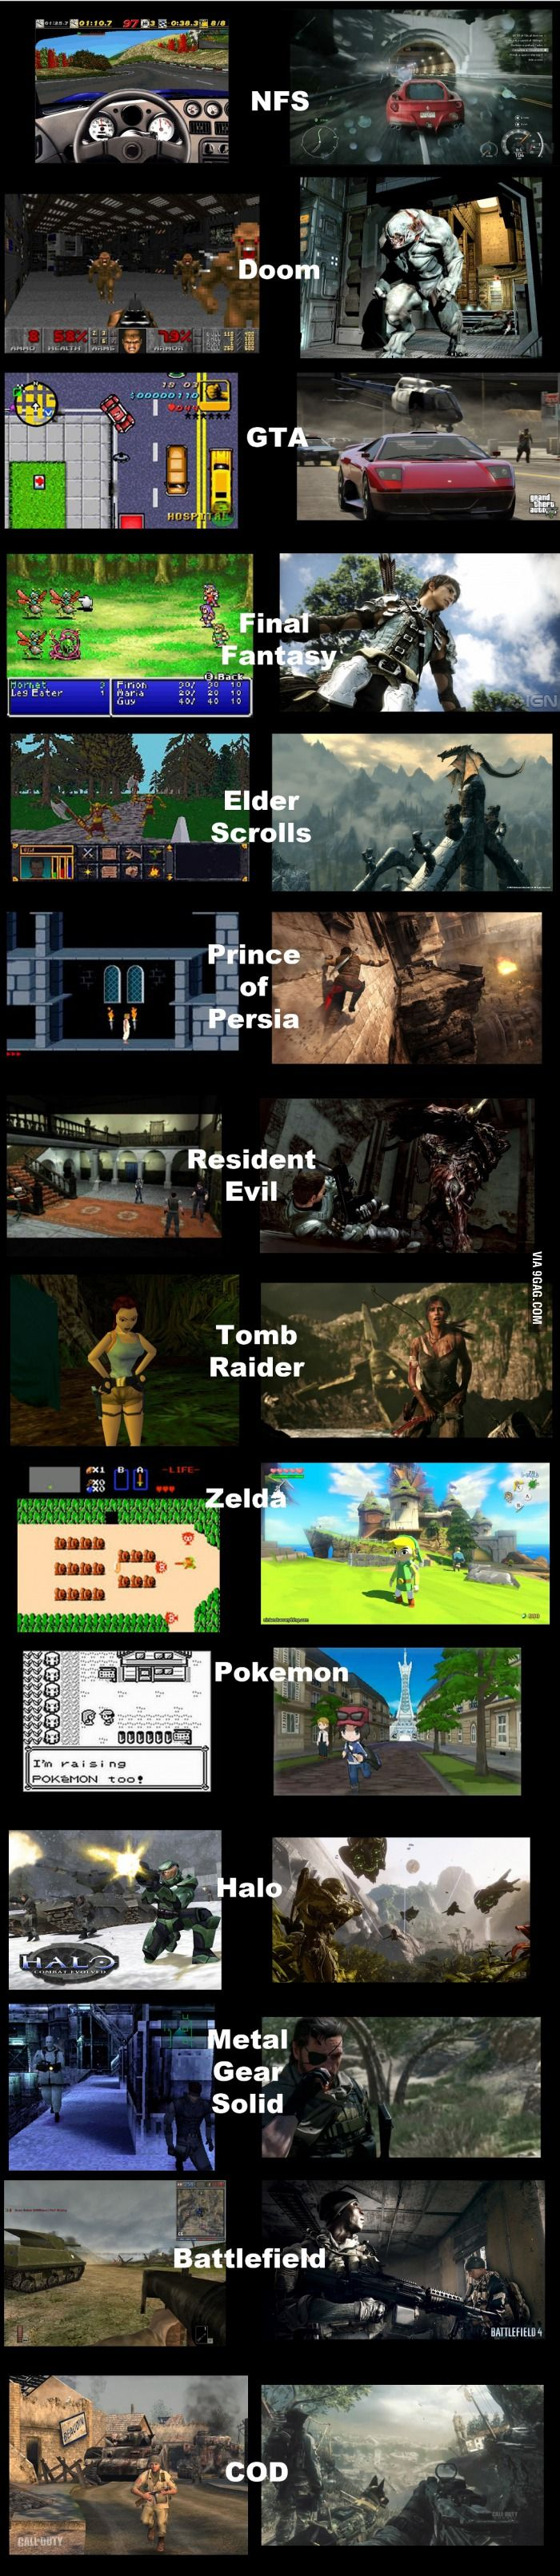 The Evolution of Video Game Graphics #videogames #gaming